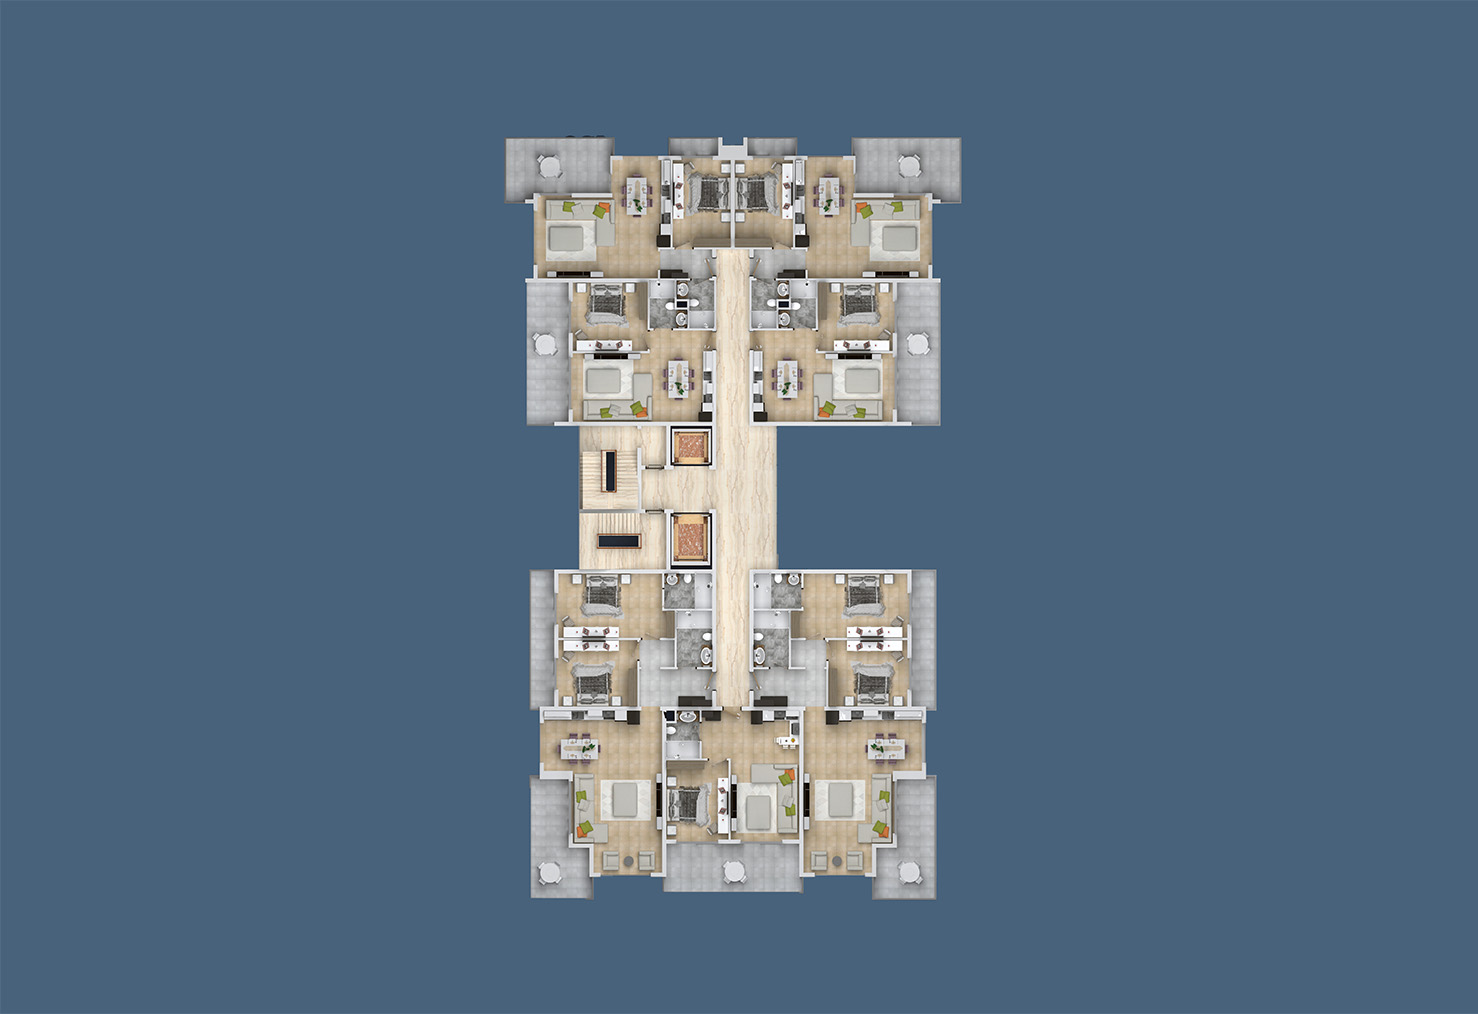 Floor plans of apartments 7 floor «D» Yekta Kingdom Trade Center